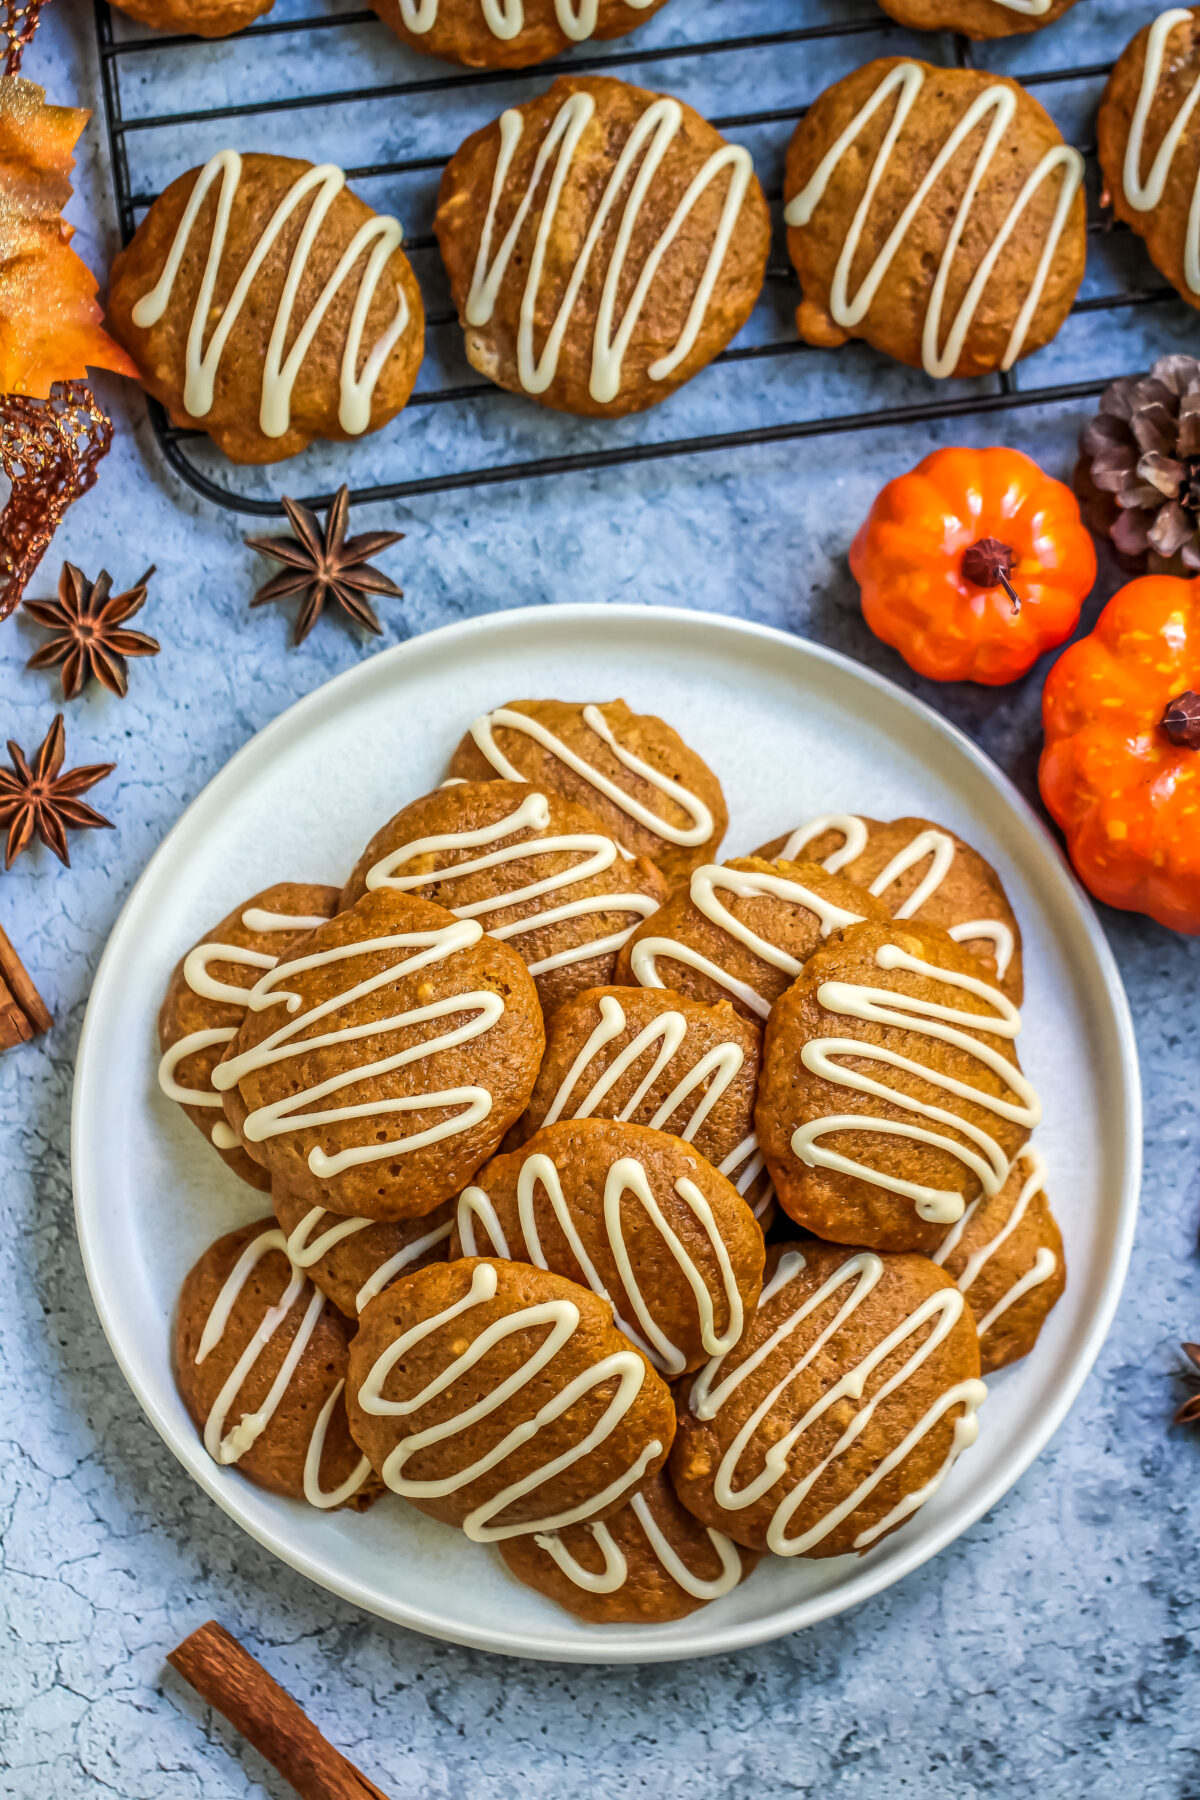 These soft and cakey pumpkin spice cookies with maple icing offer just the right amount of sweetness and a delicious kick of pumpkin spice.